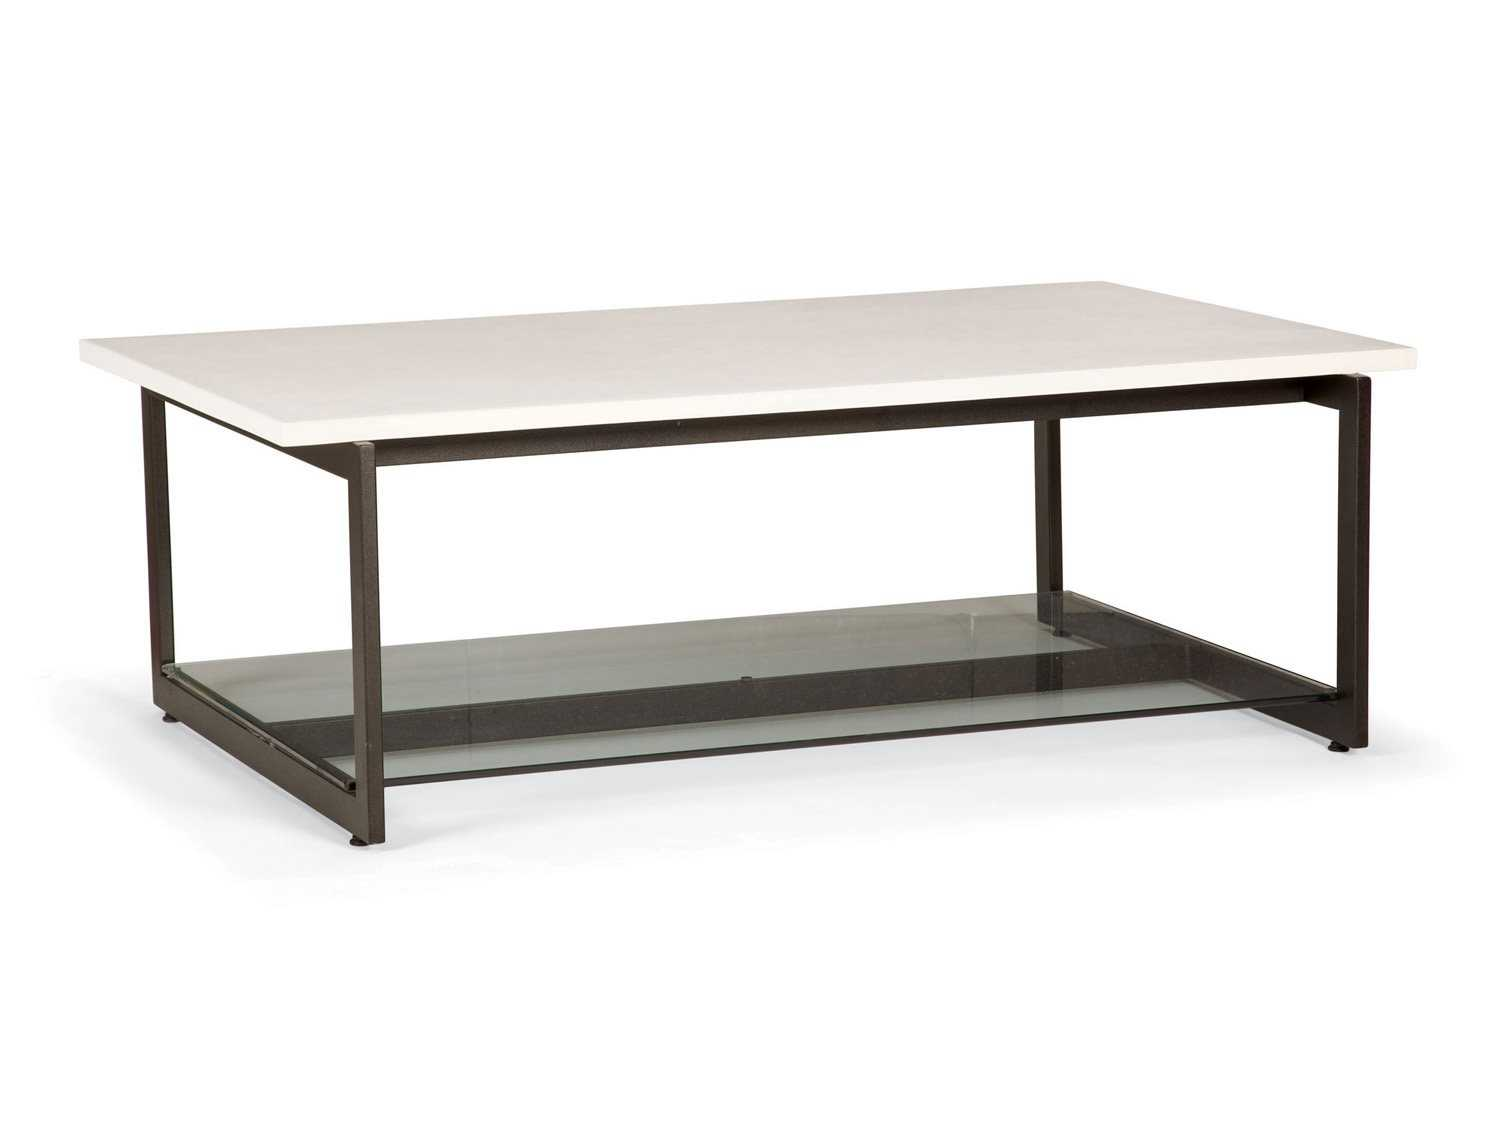 Bernhardt st claire 54 x 34 rectangular coffee table bh549011 Bernhardt coffee tables